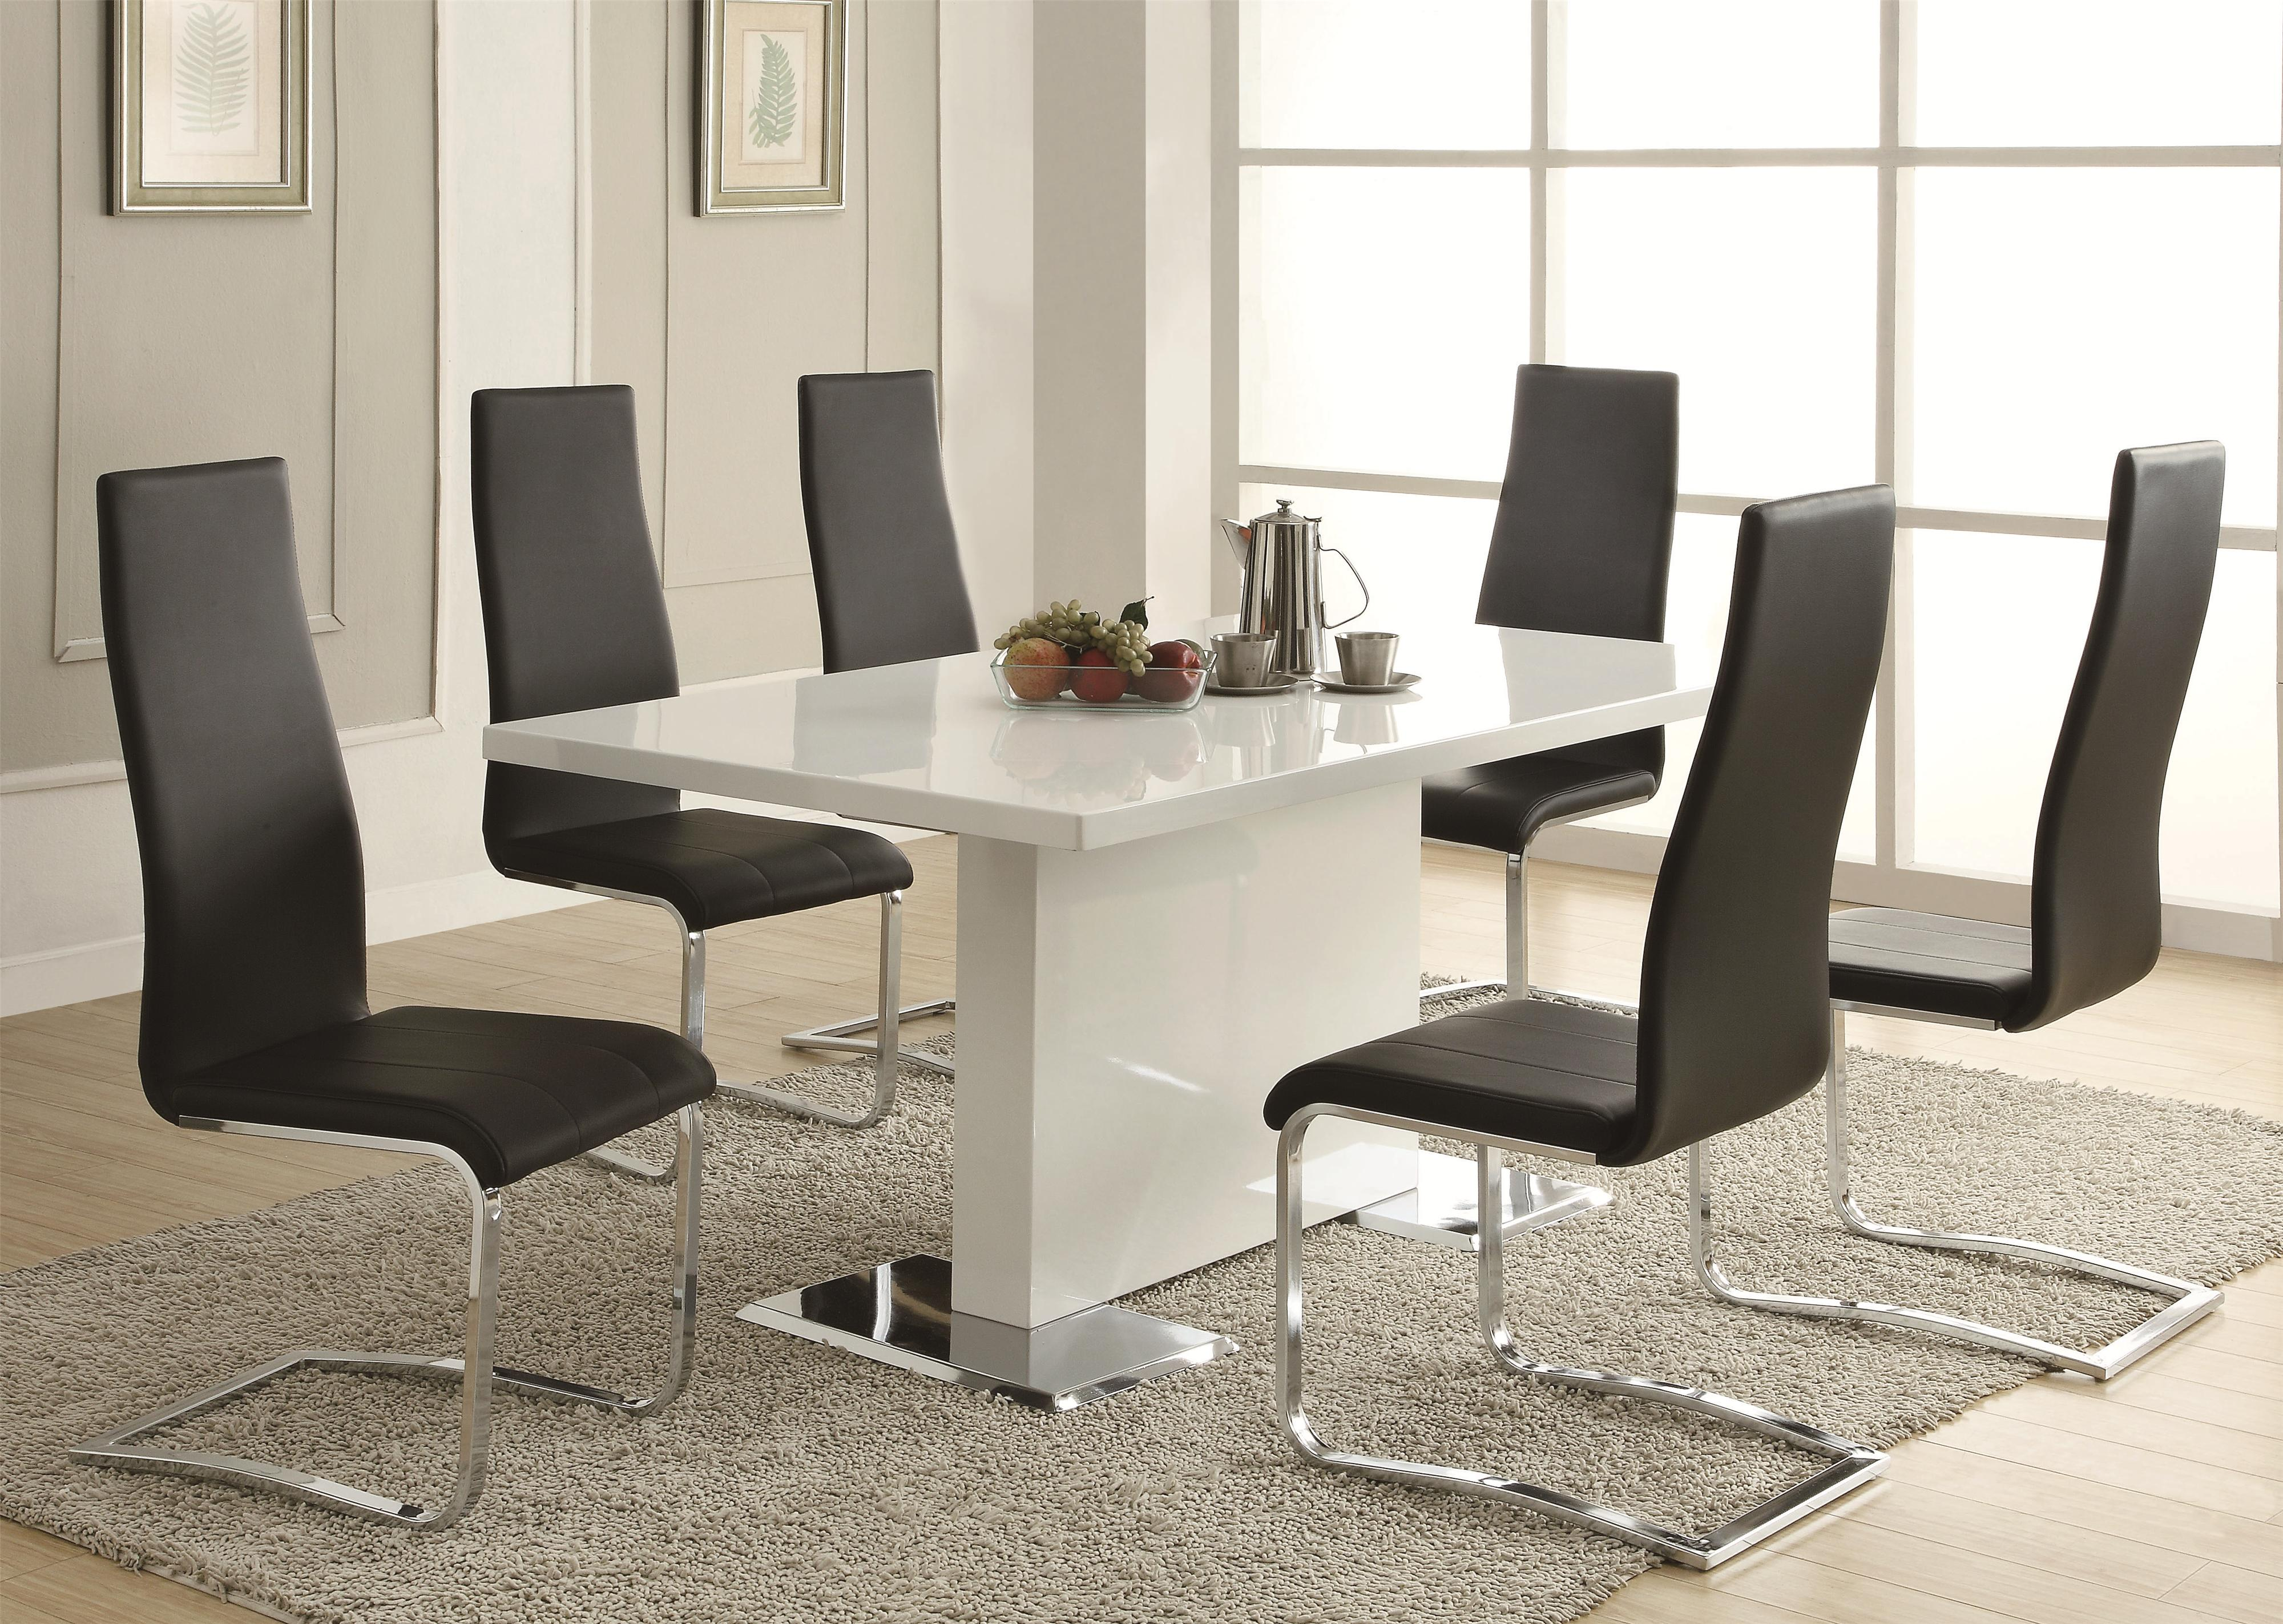 BLK kitchen table chairs set Coaster Modern Dining 7 Piece White Table Black Upholstered Chairs Set Coaster Fine Furniture